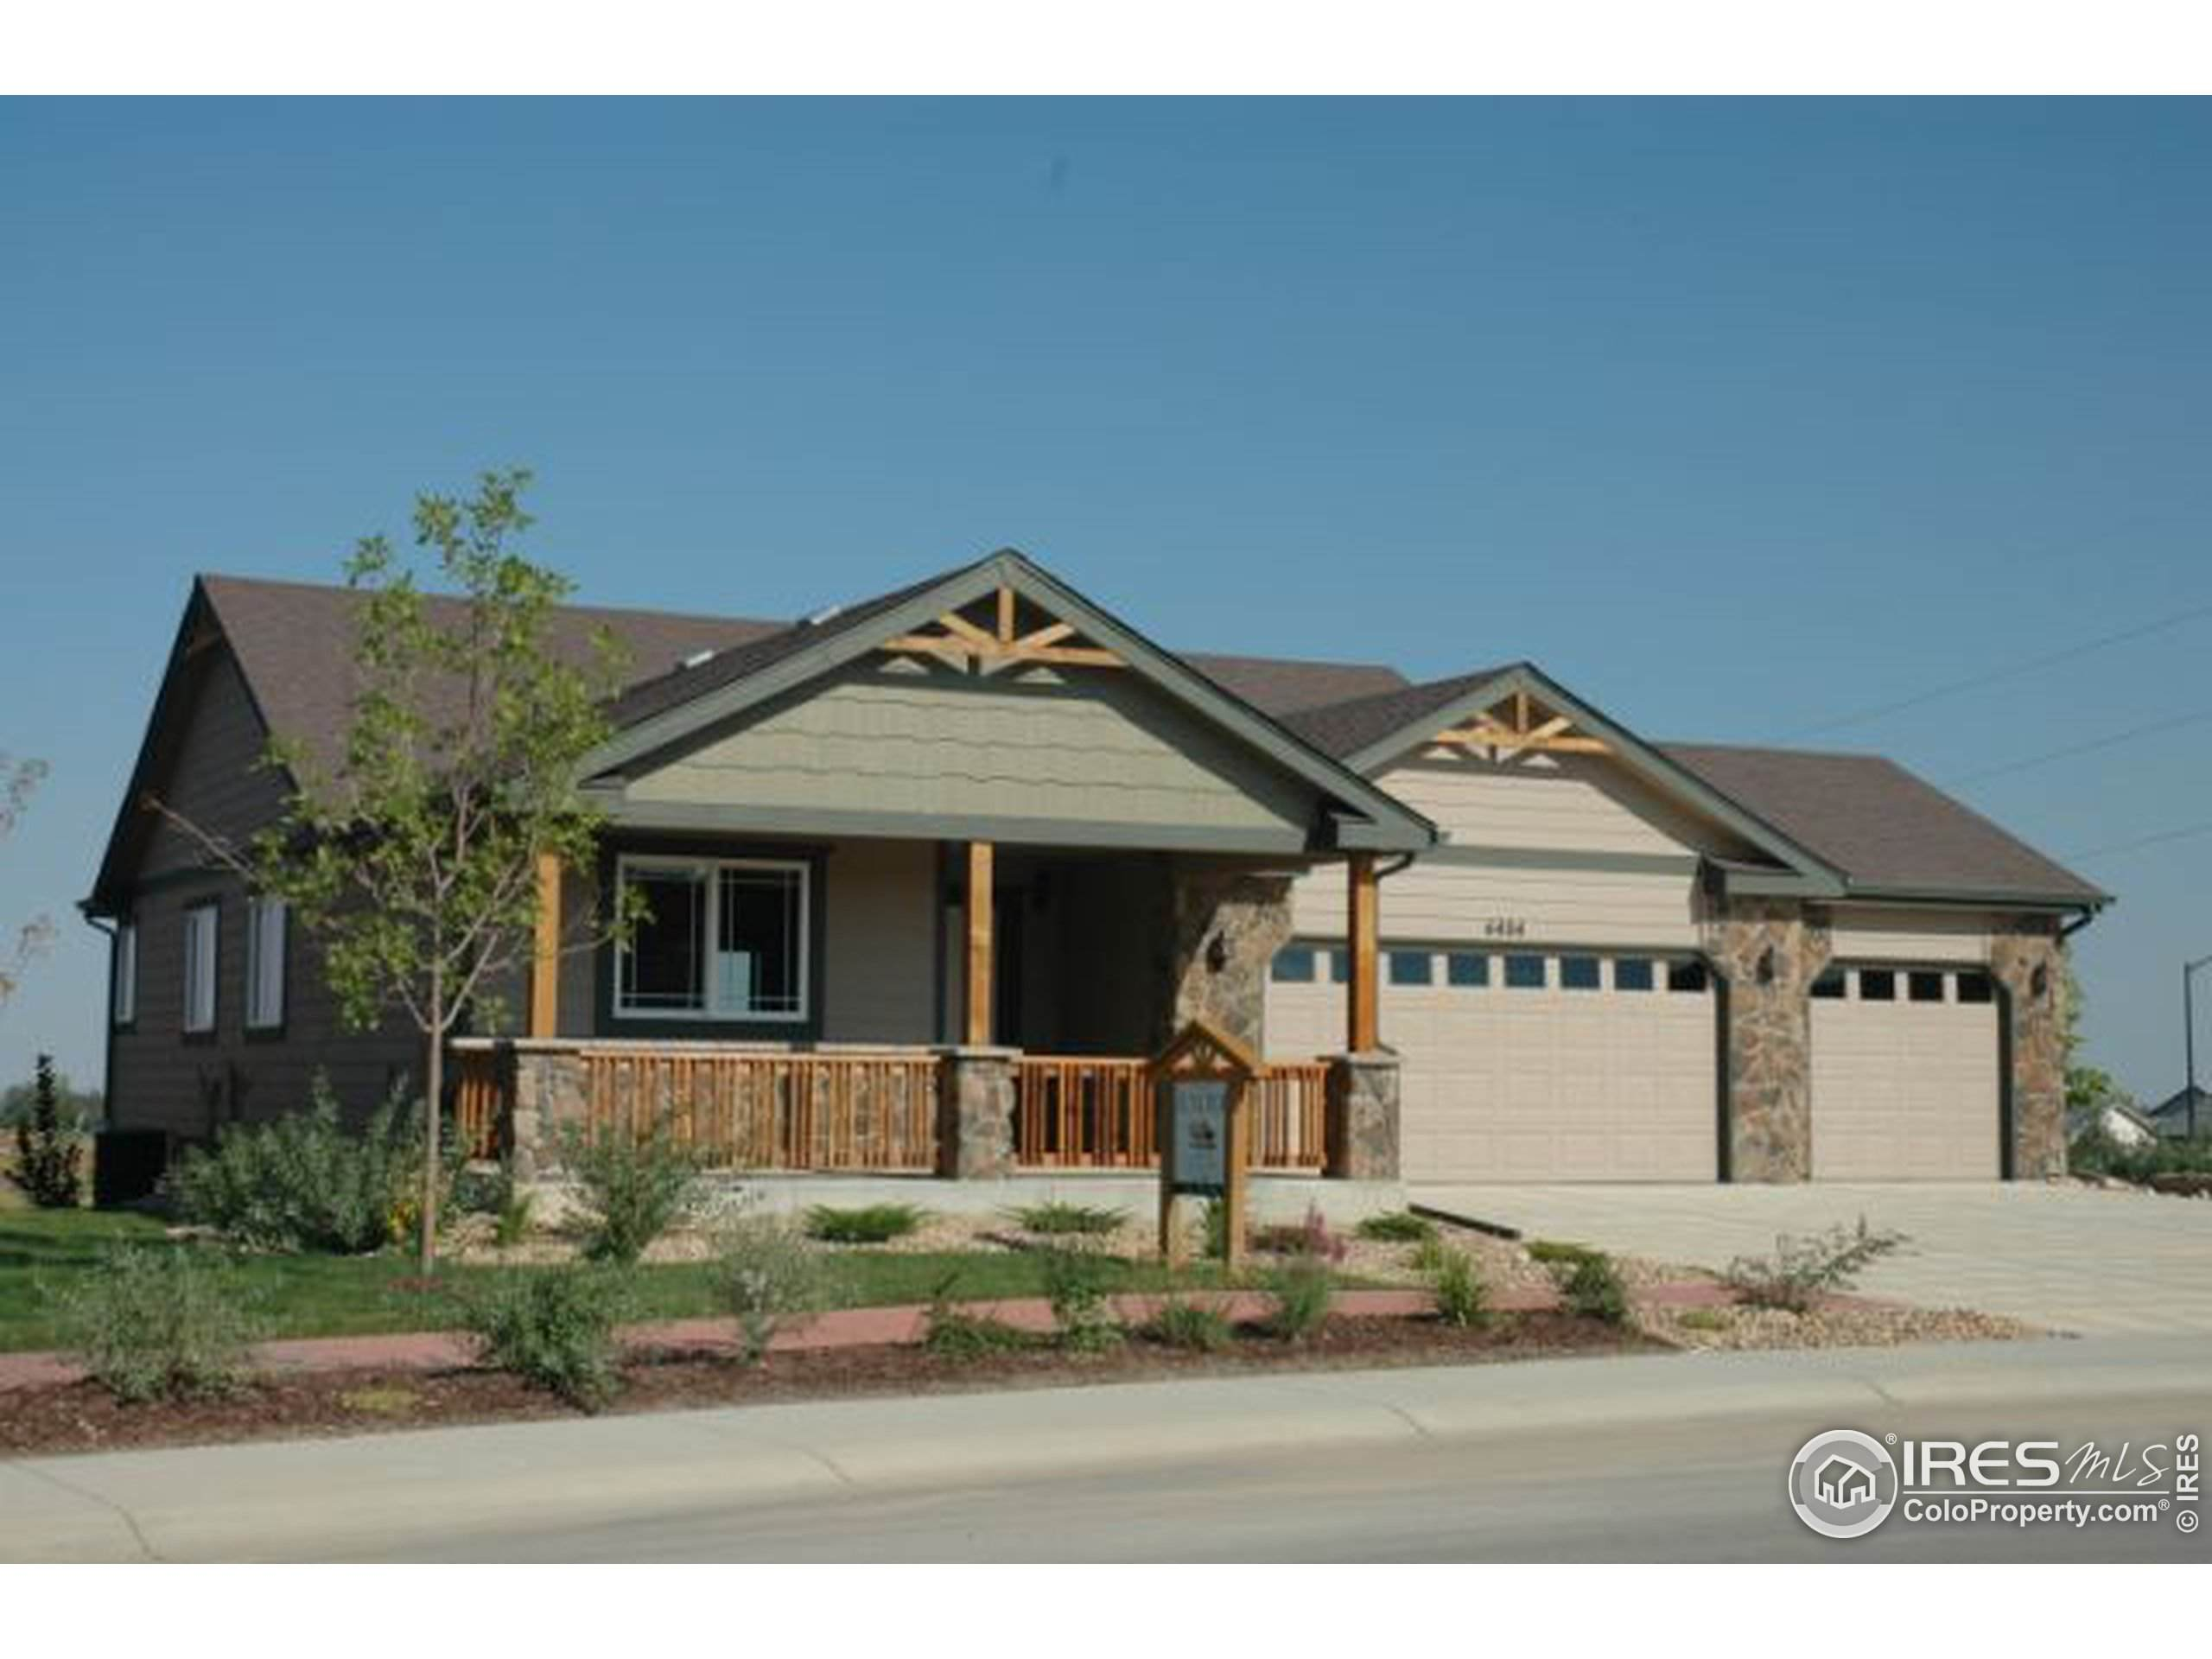 2232 20th Ave, Greeley, CO 80631 (MLS #934566) :: 8z Real Estate